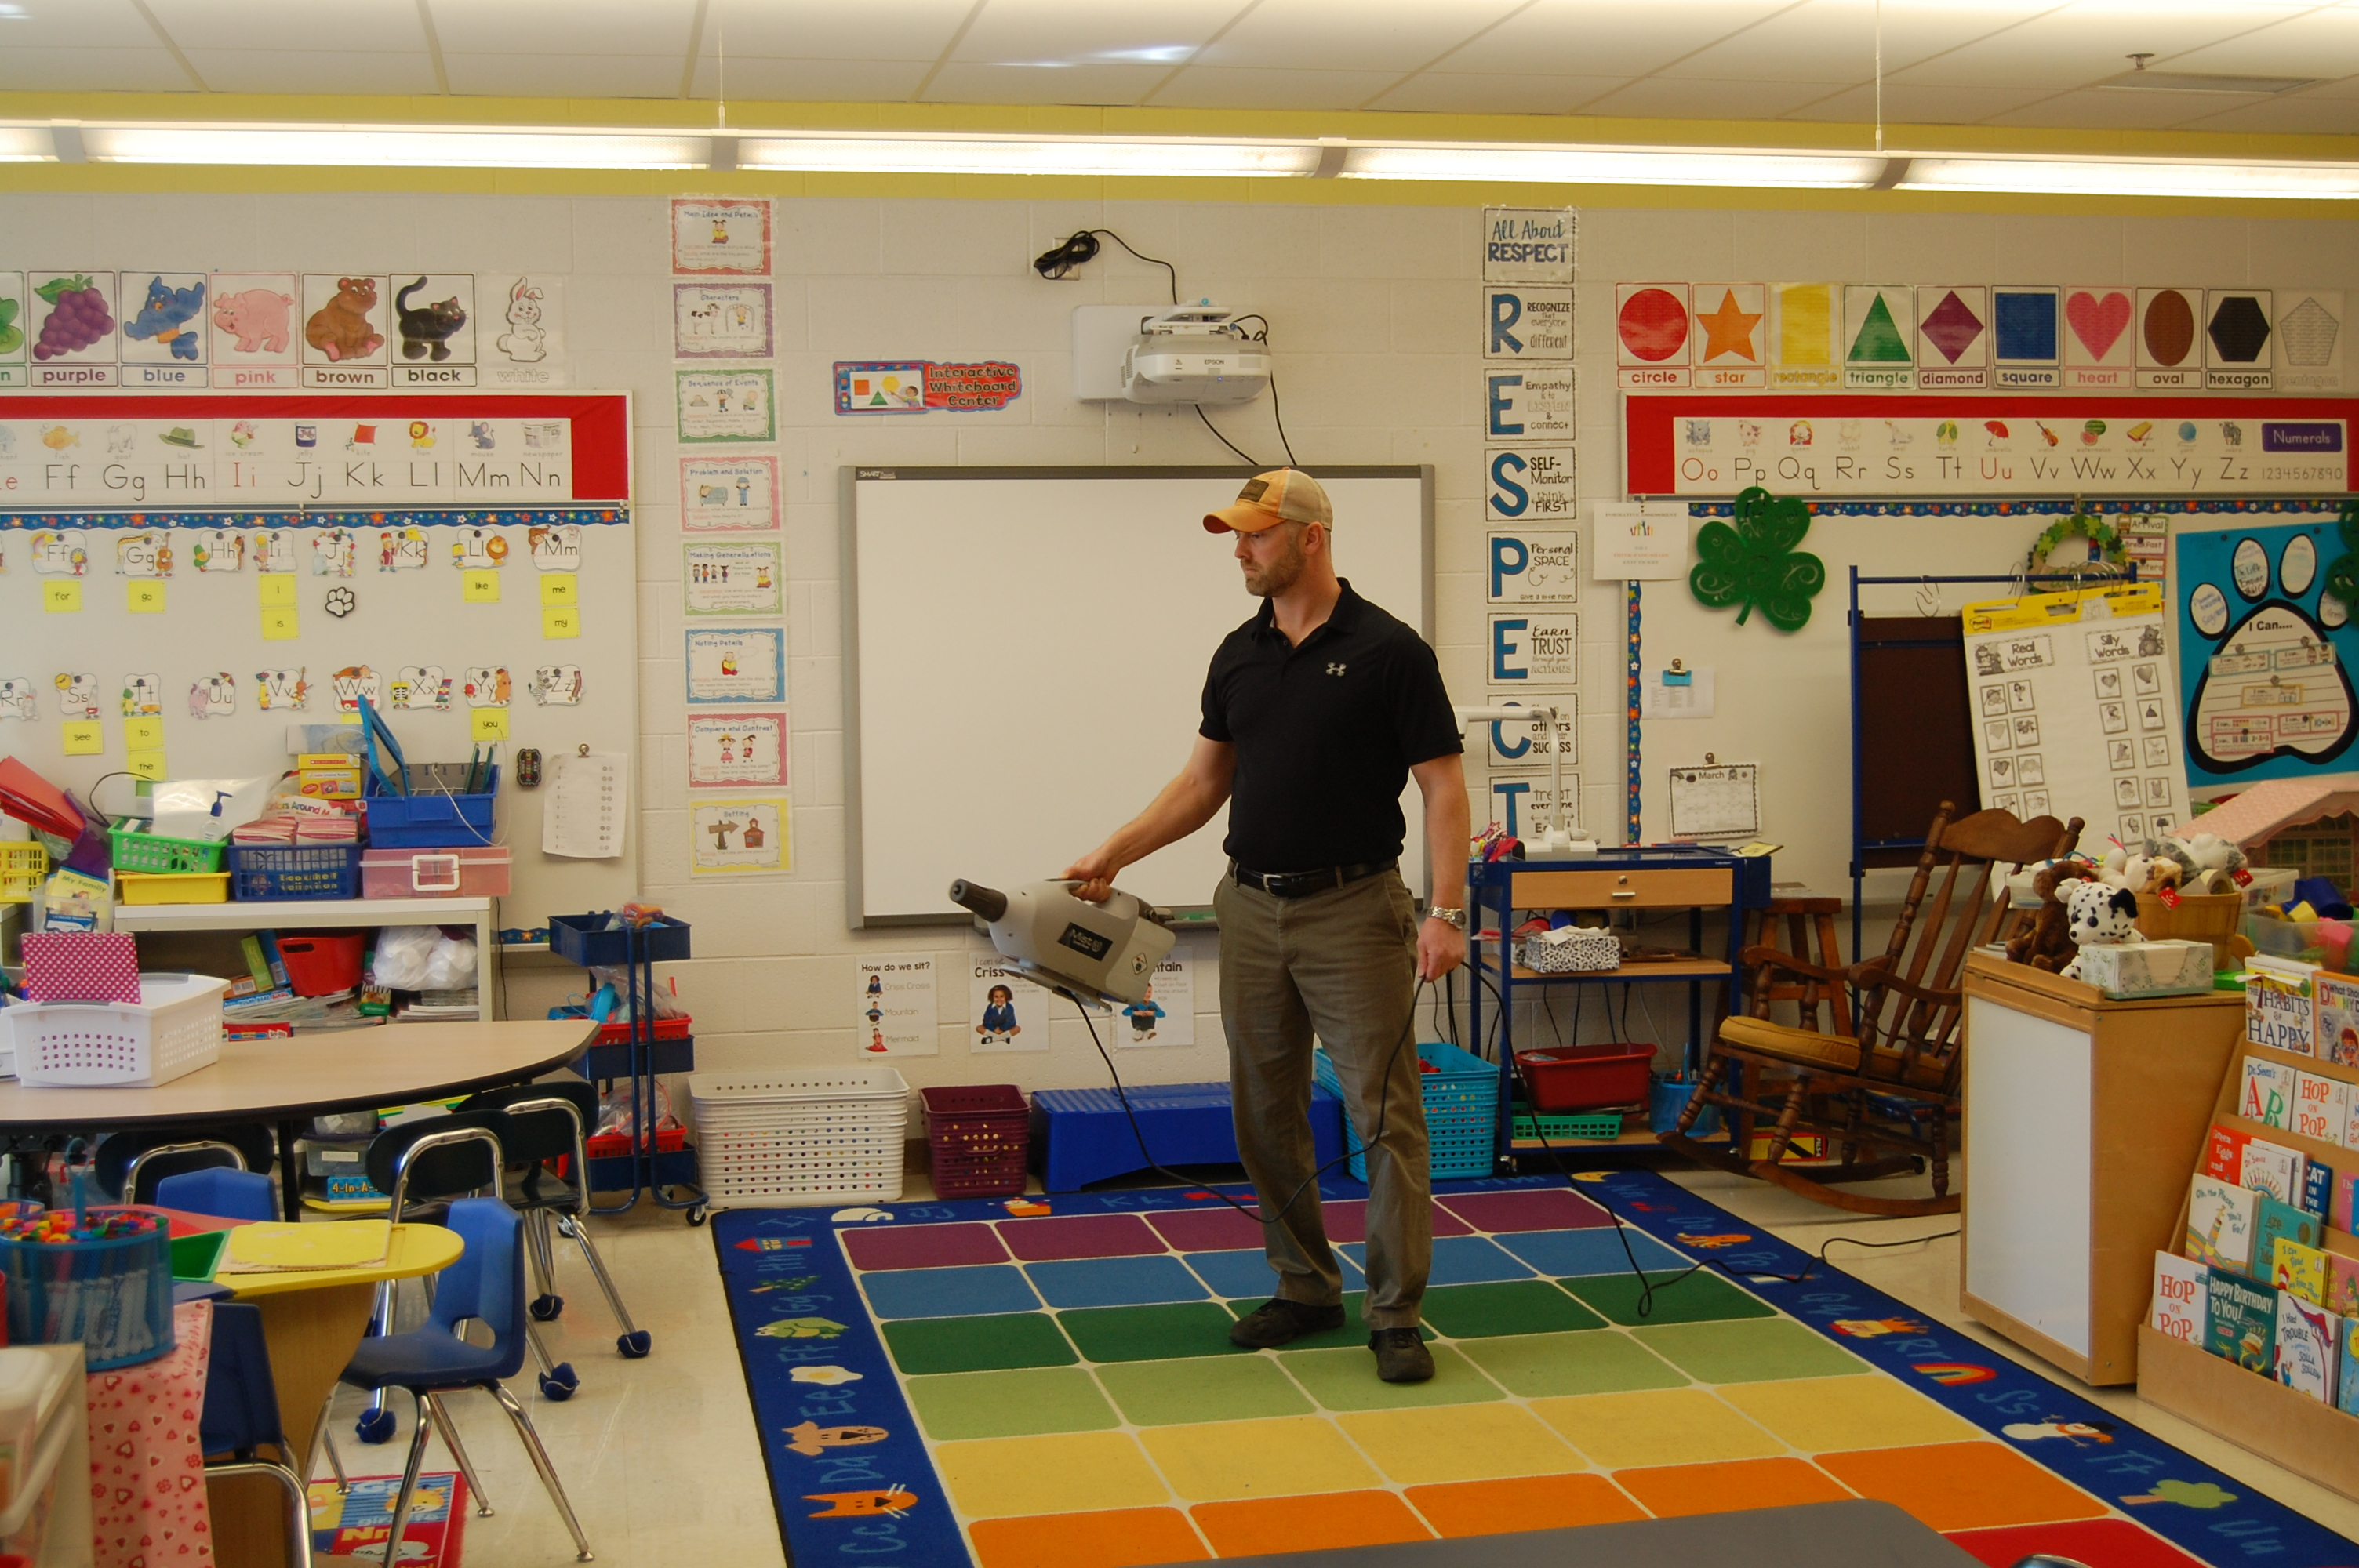 Cleaning a classroom with GenEon Mister